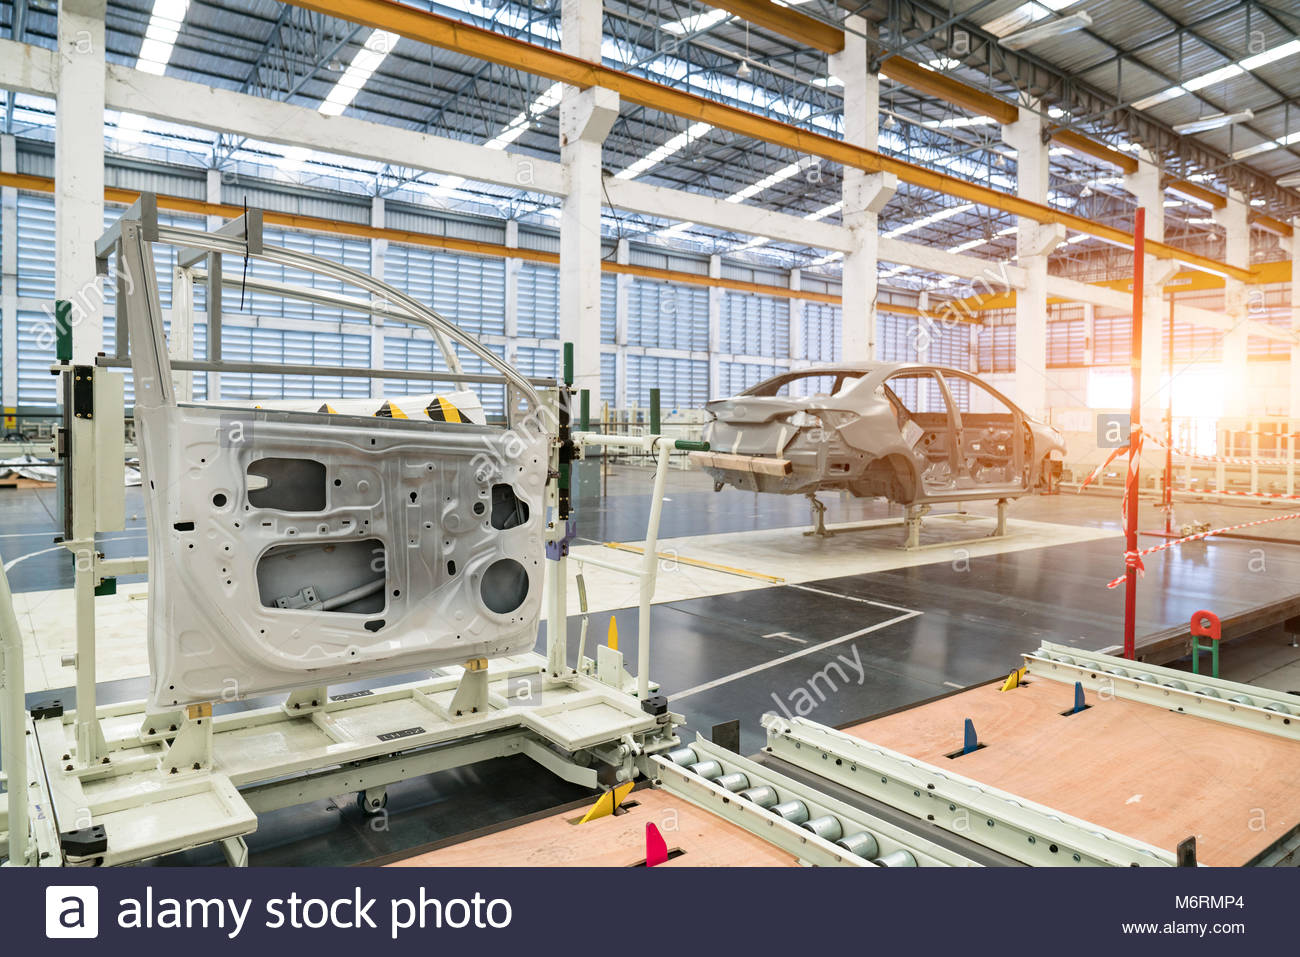 The simulated line door's parts (doors) prepared for installation at automotive plant. - Stock Image